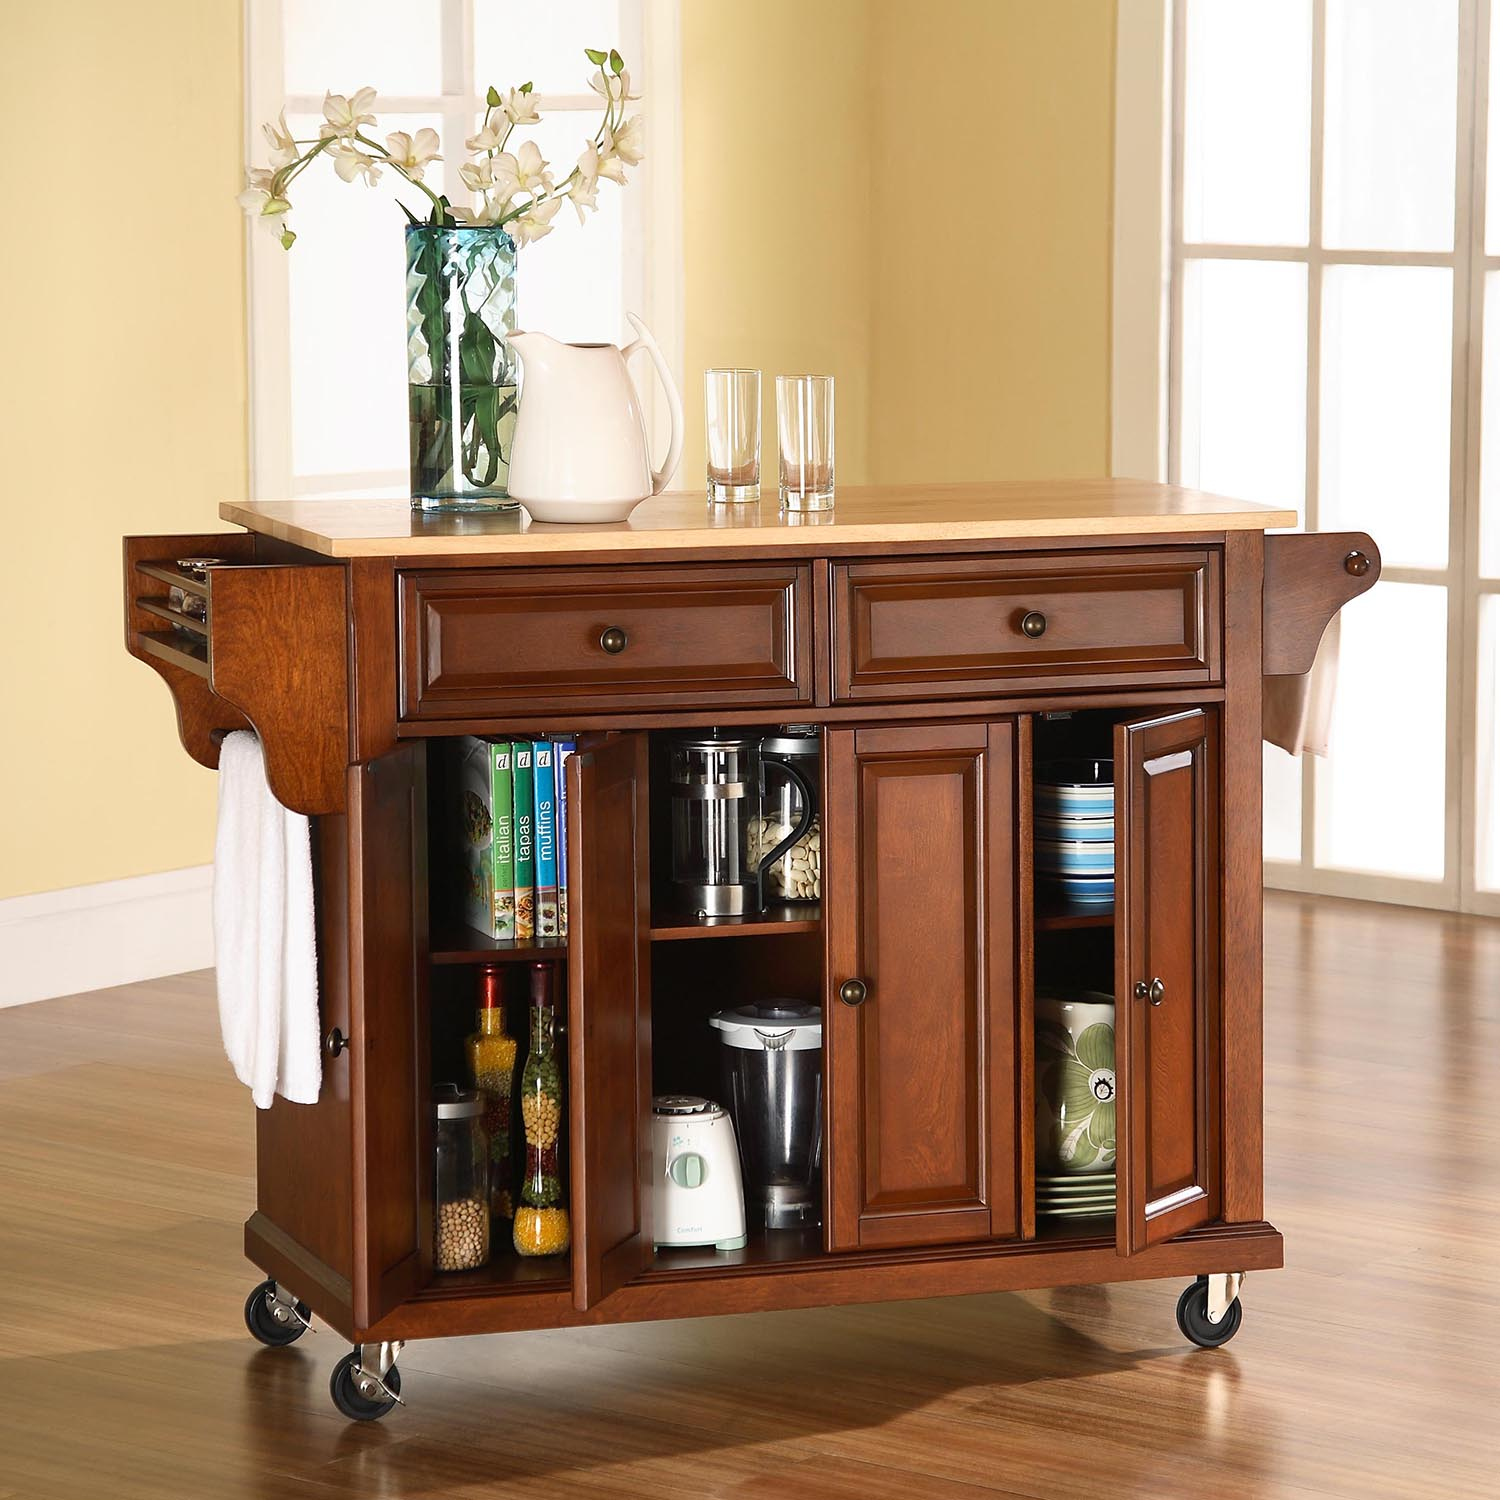 Natural Wood Top Kitchen Cart/Island - Casters, Classic Cherry - CROS-KF30001ECH